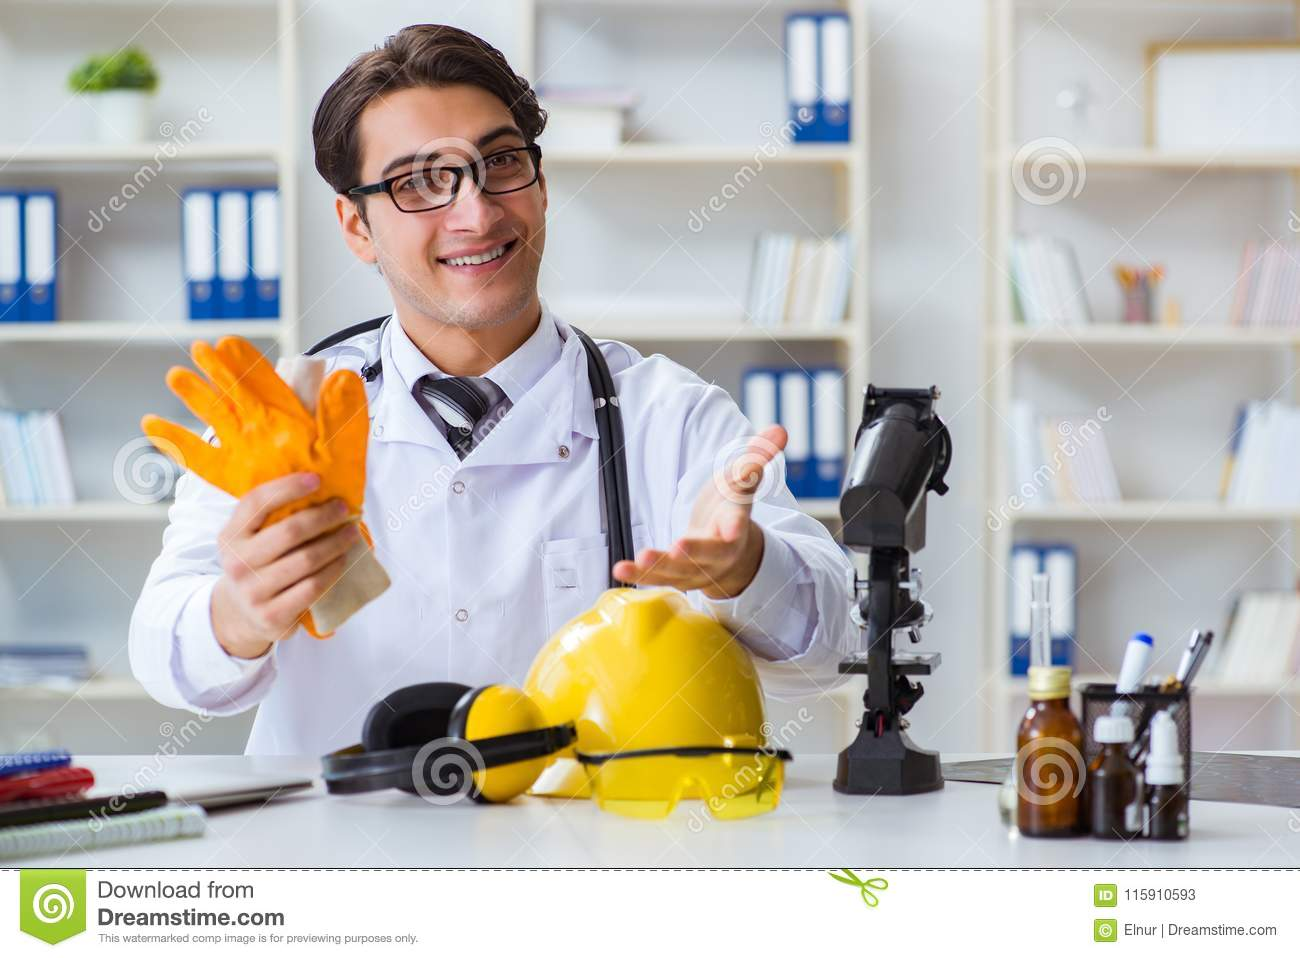 The safety doctor advising about wearing protective gloves